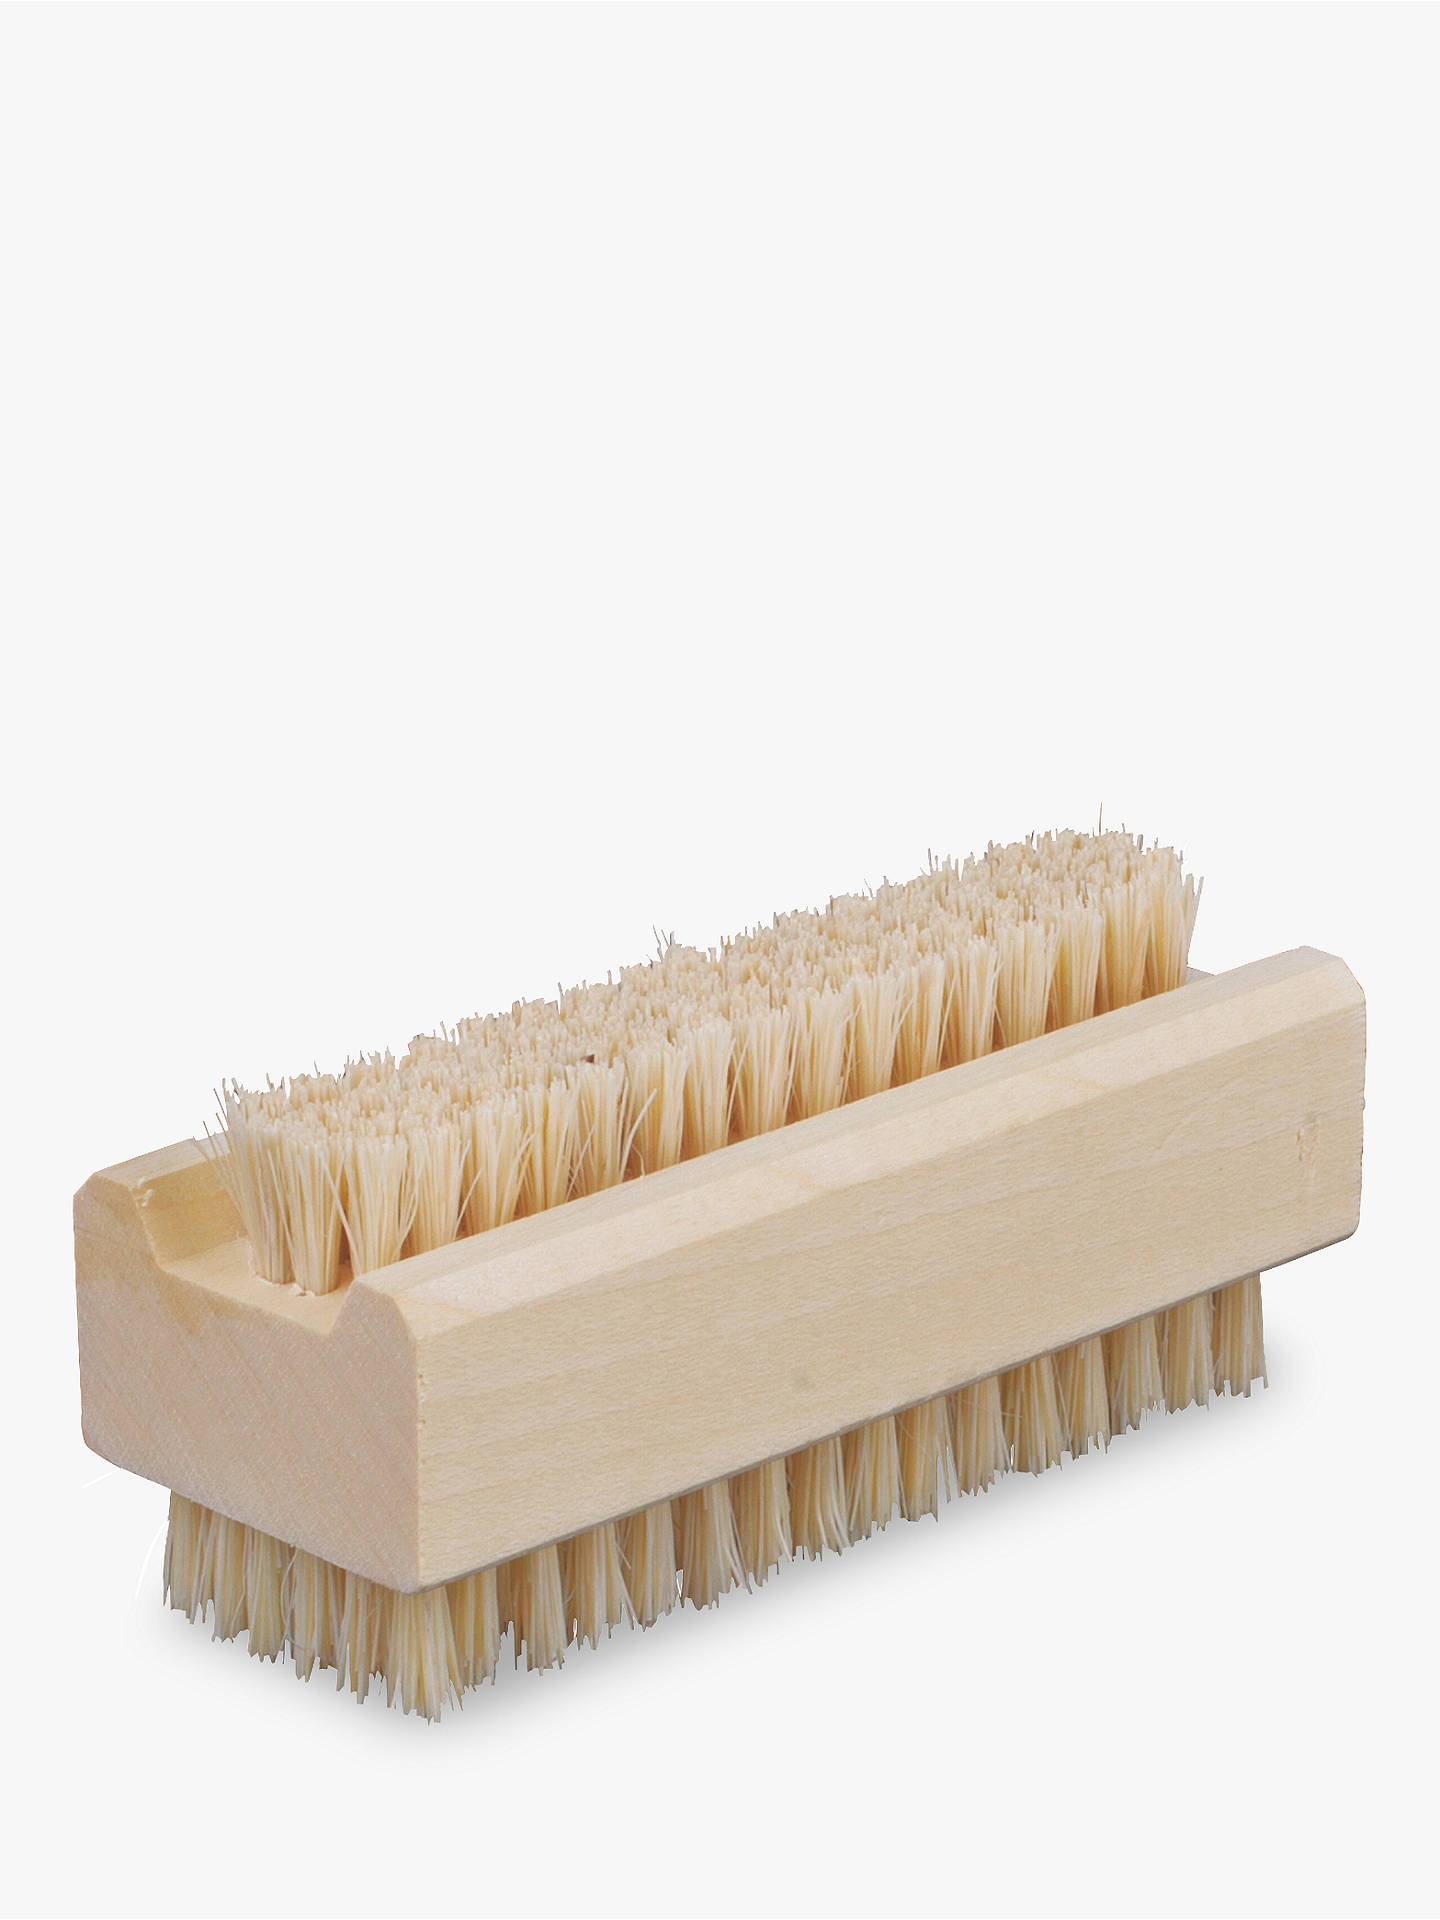 BuyRedecker Maple Wood Nail Brush Online at johnlewis.com